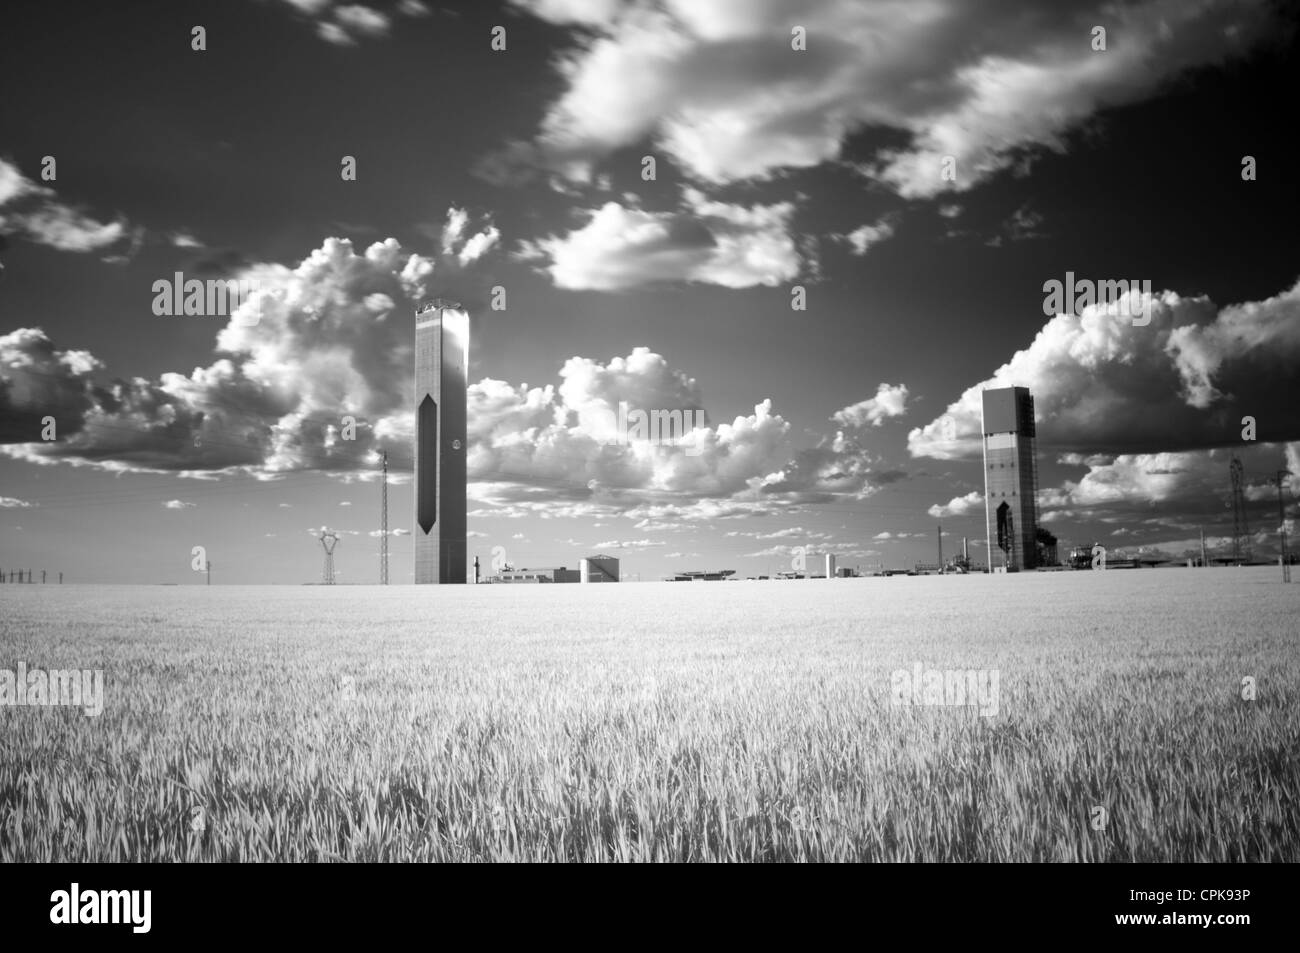 Infrared image of solar plant towers in a wheat field, Sanlucar la Mayor, Seville, Spain - Stock Image